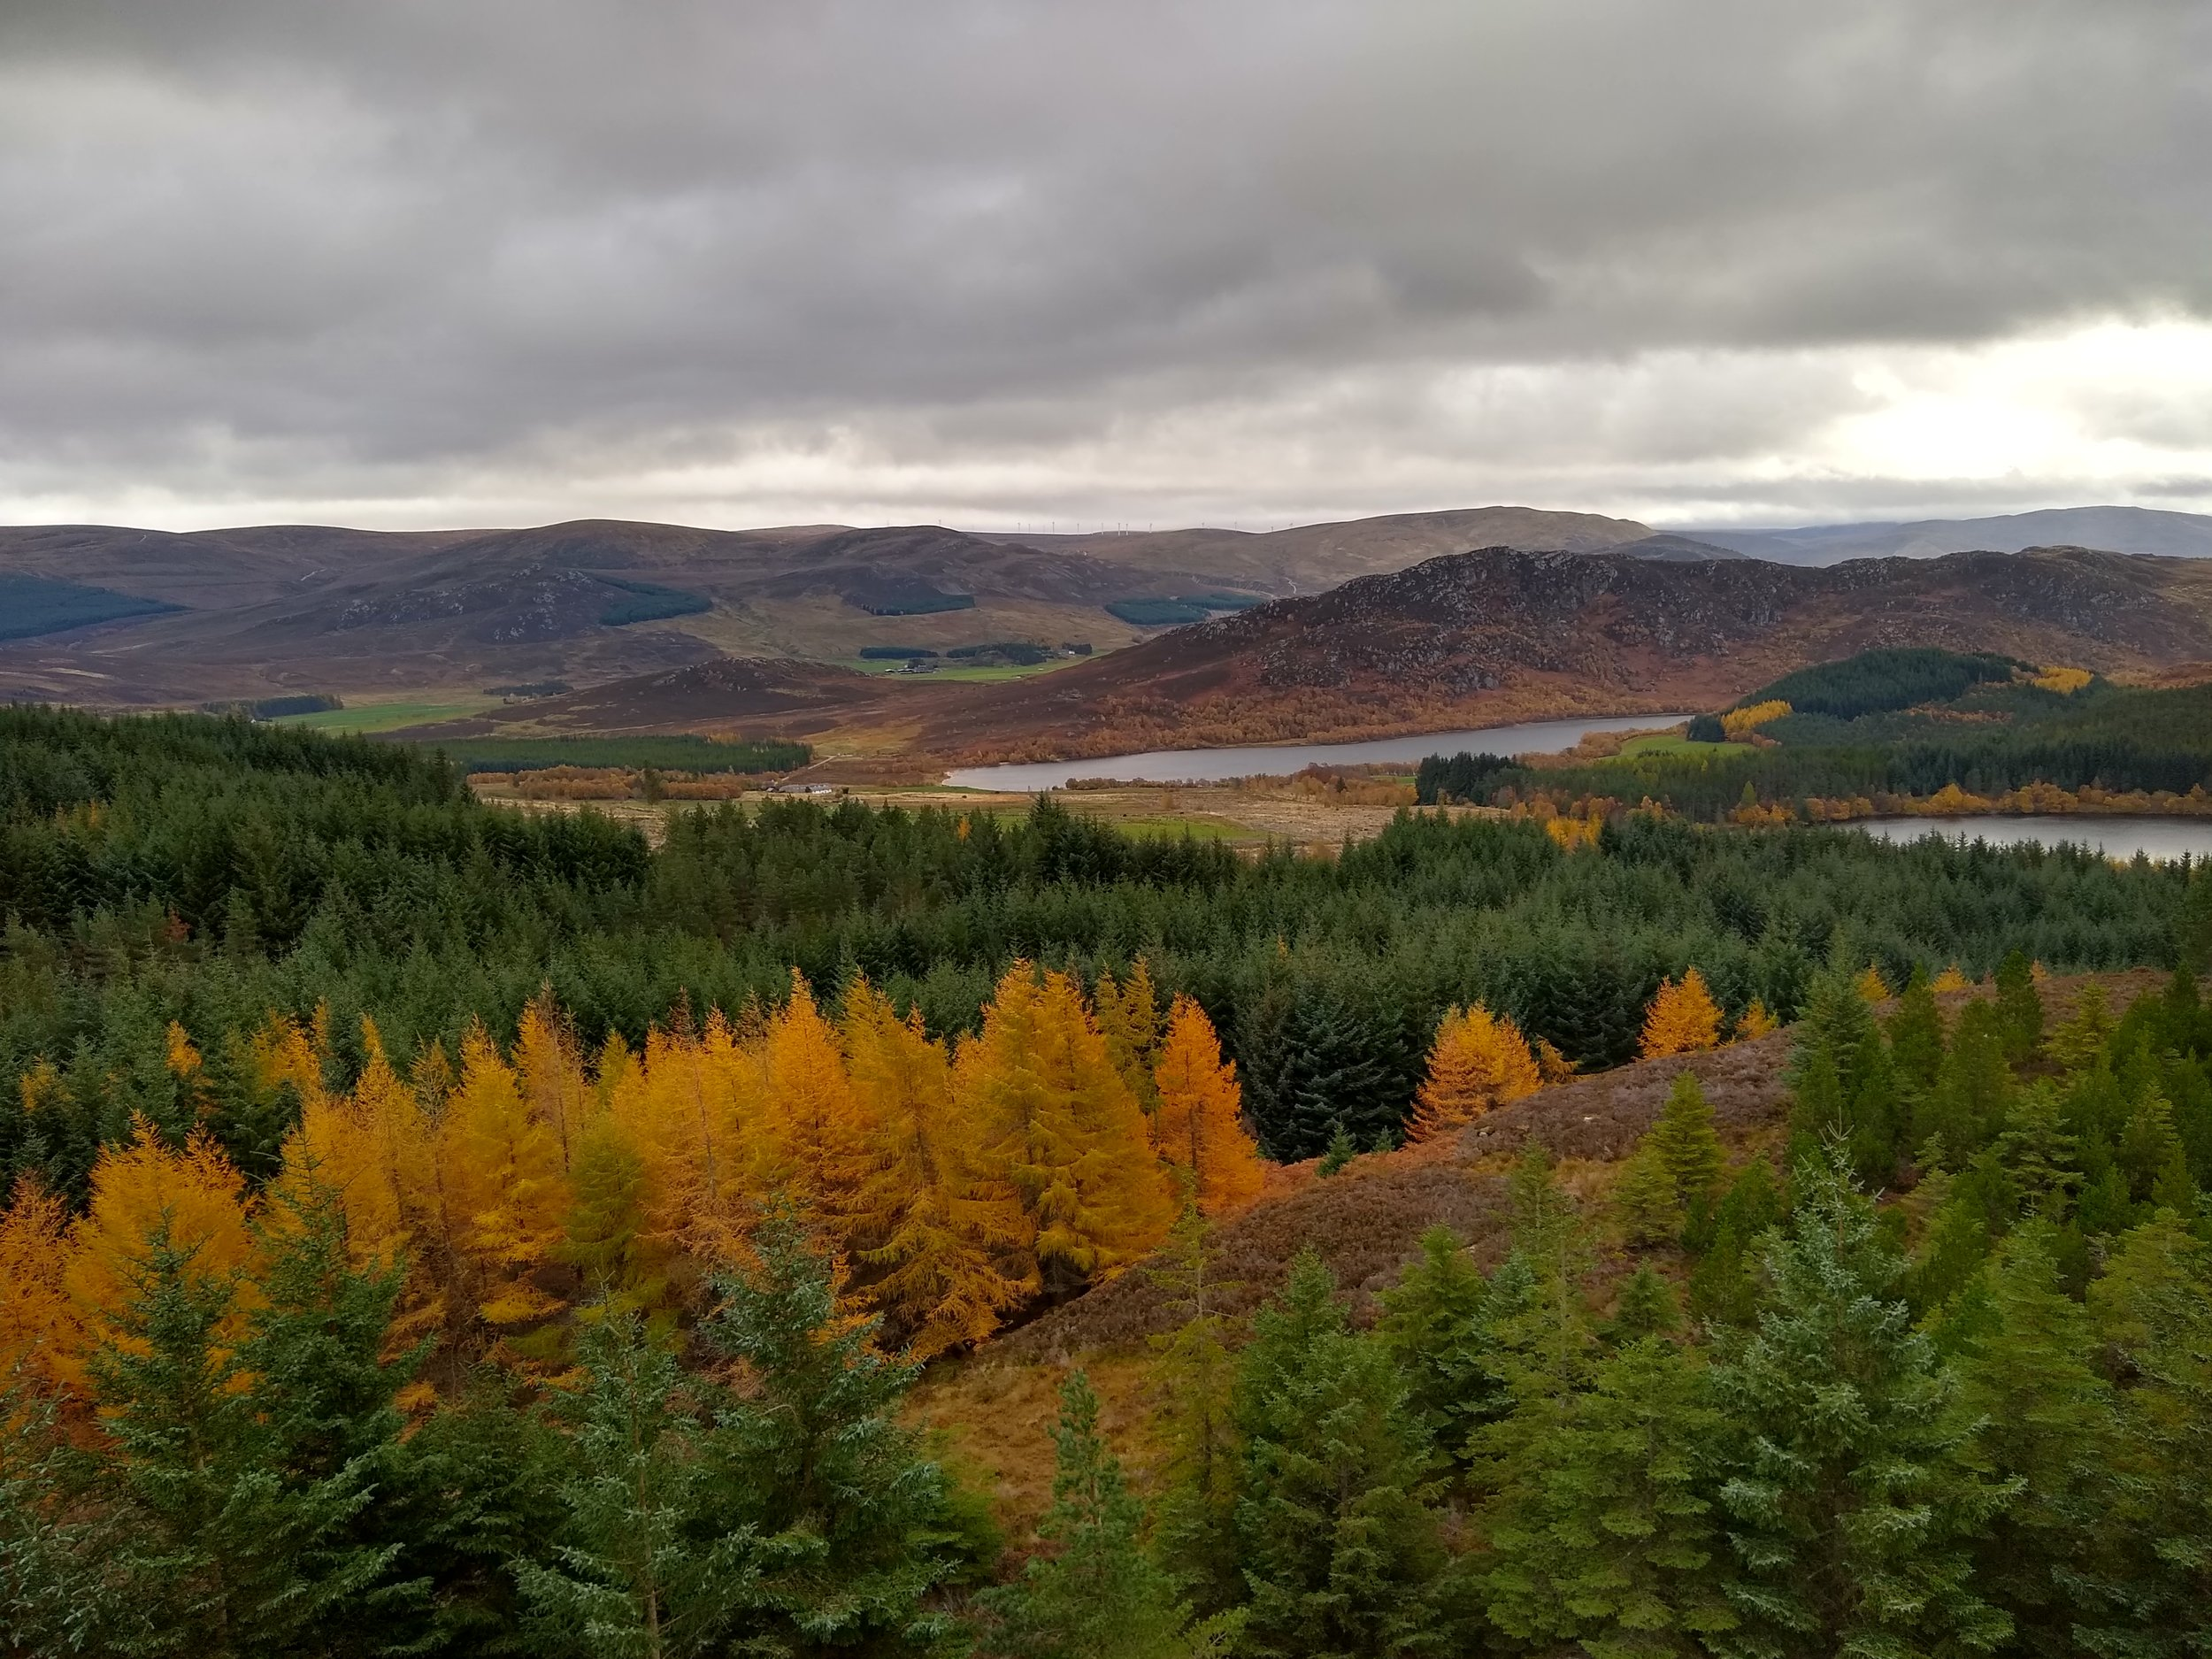 Larch in the autumn landscape